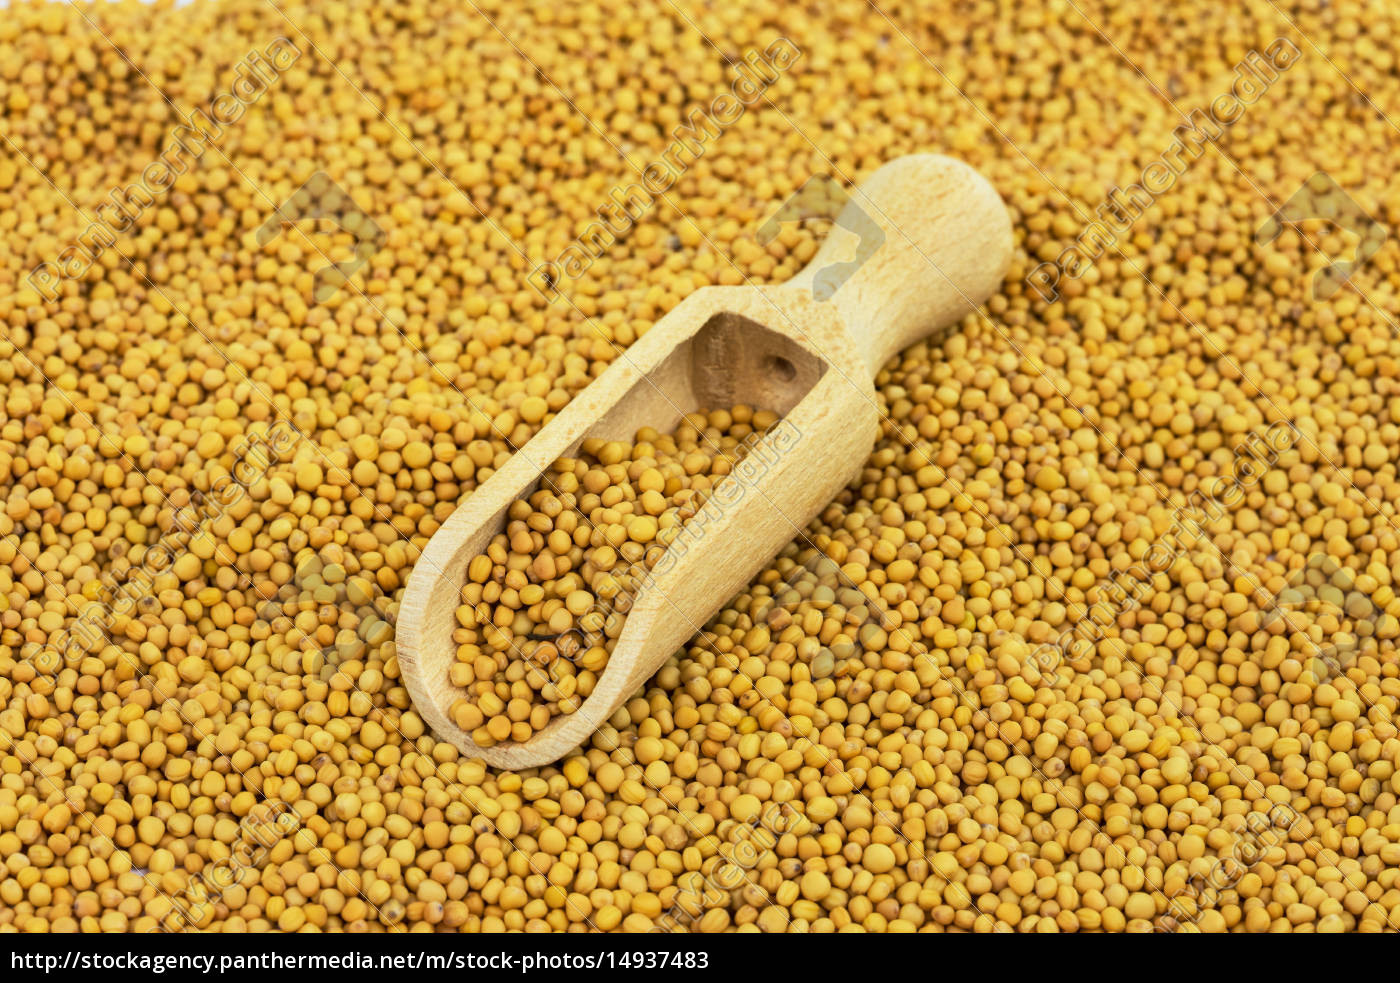 mustard, seeds, yellow - 14937483